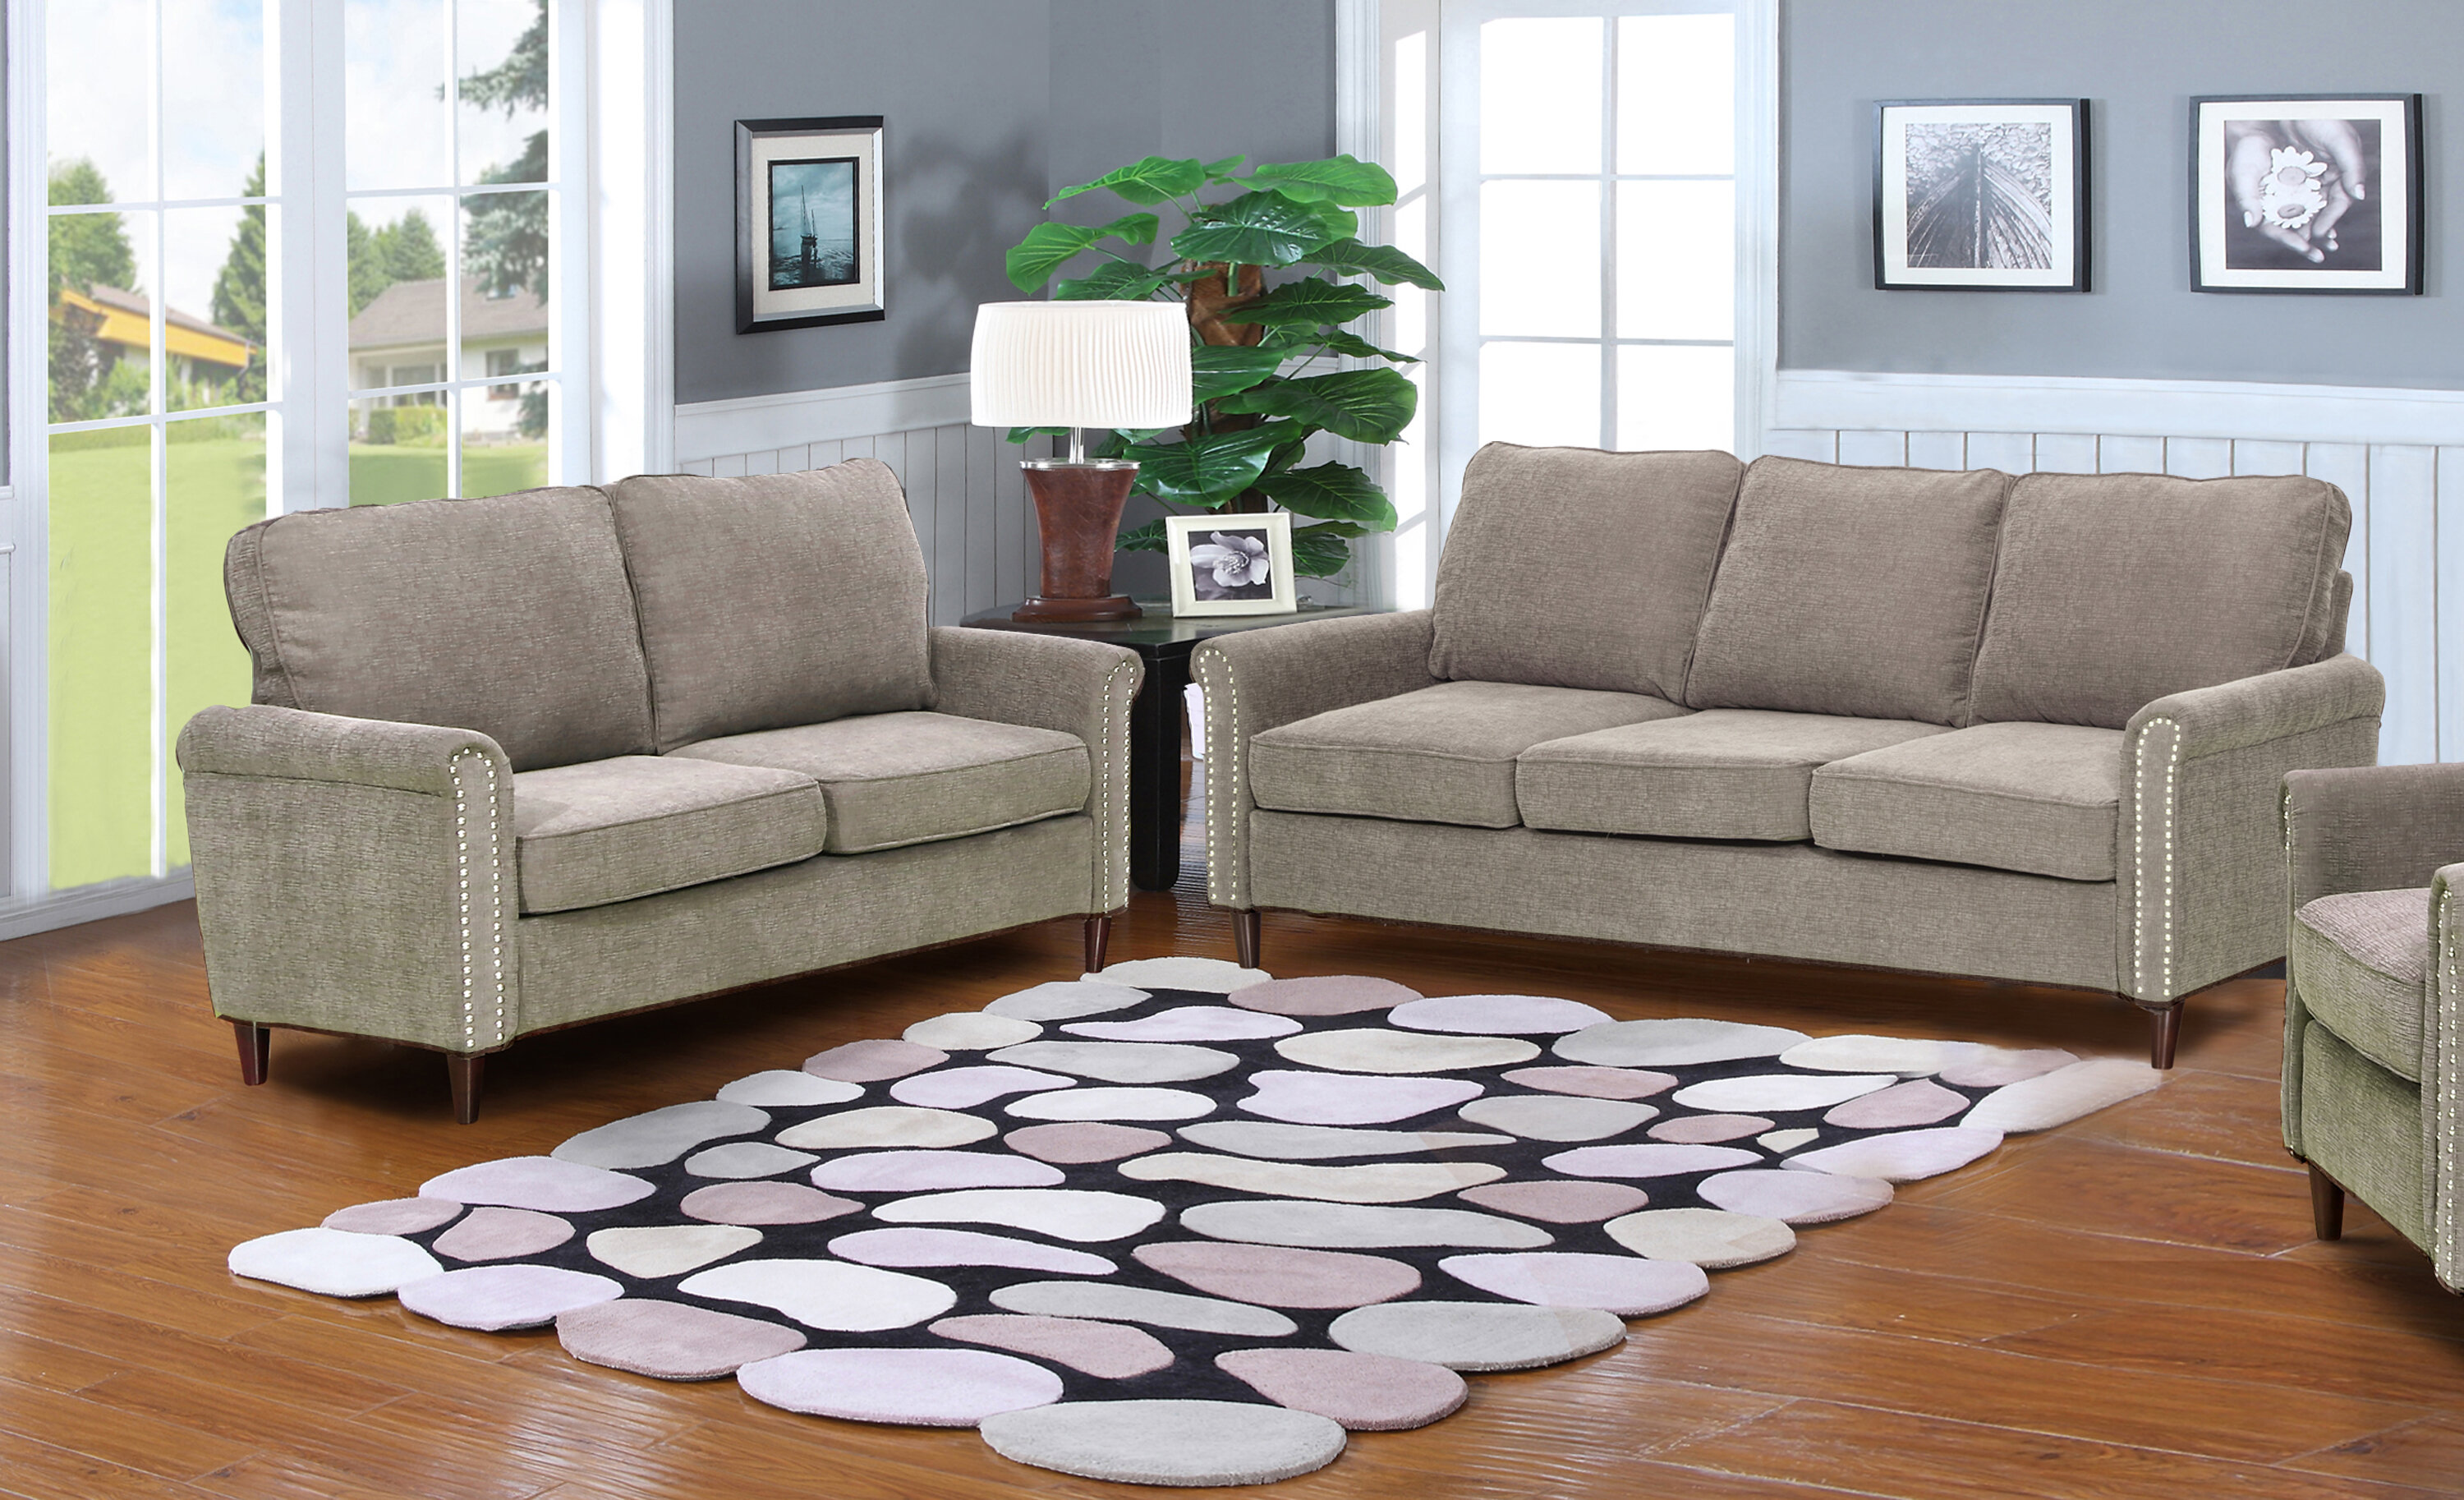 Beau Charlton Home Hayton Fabric Modern 2 Piece Solid Living Room Set U0026 Reviews  | Wayfair